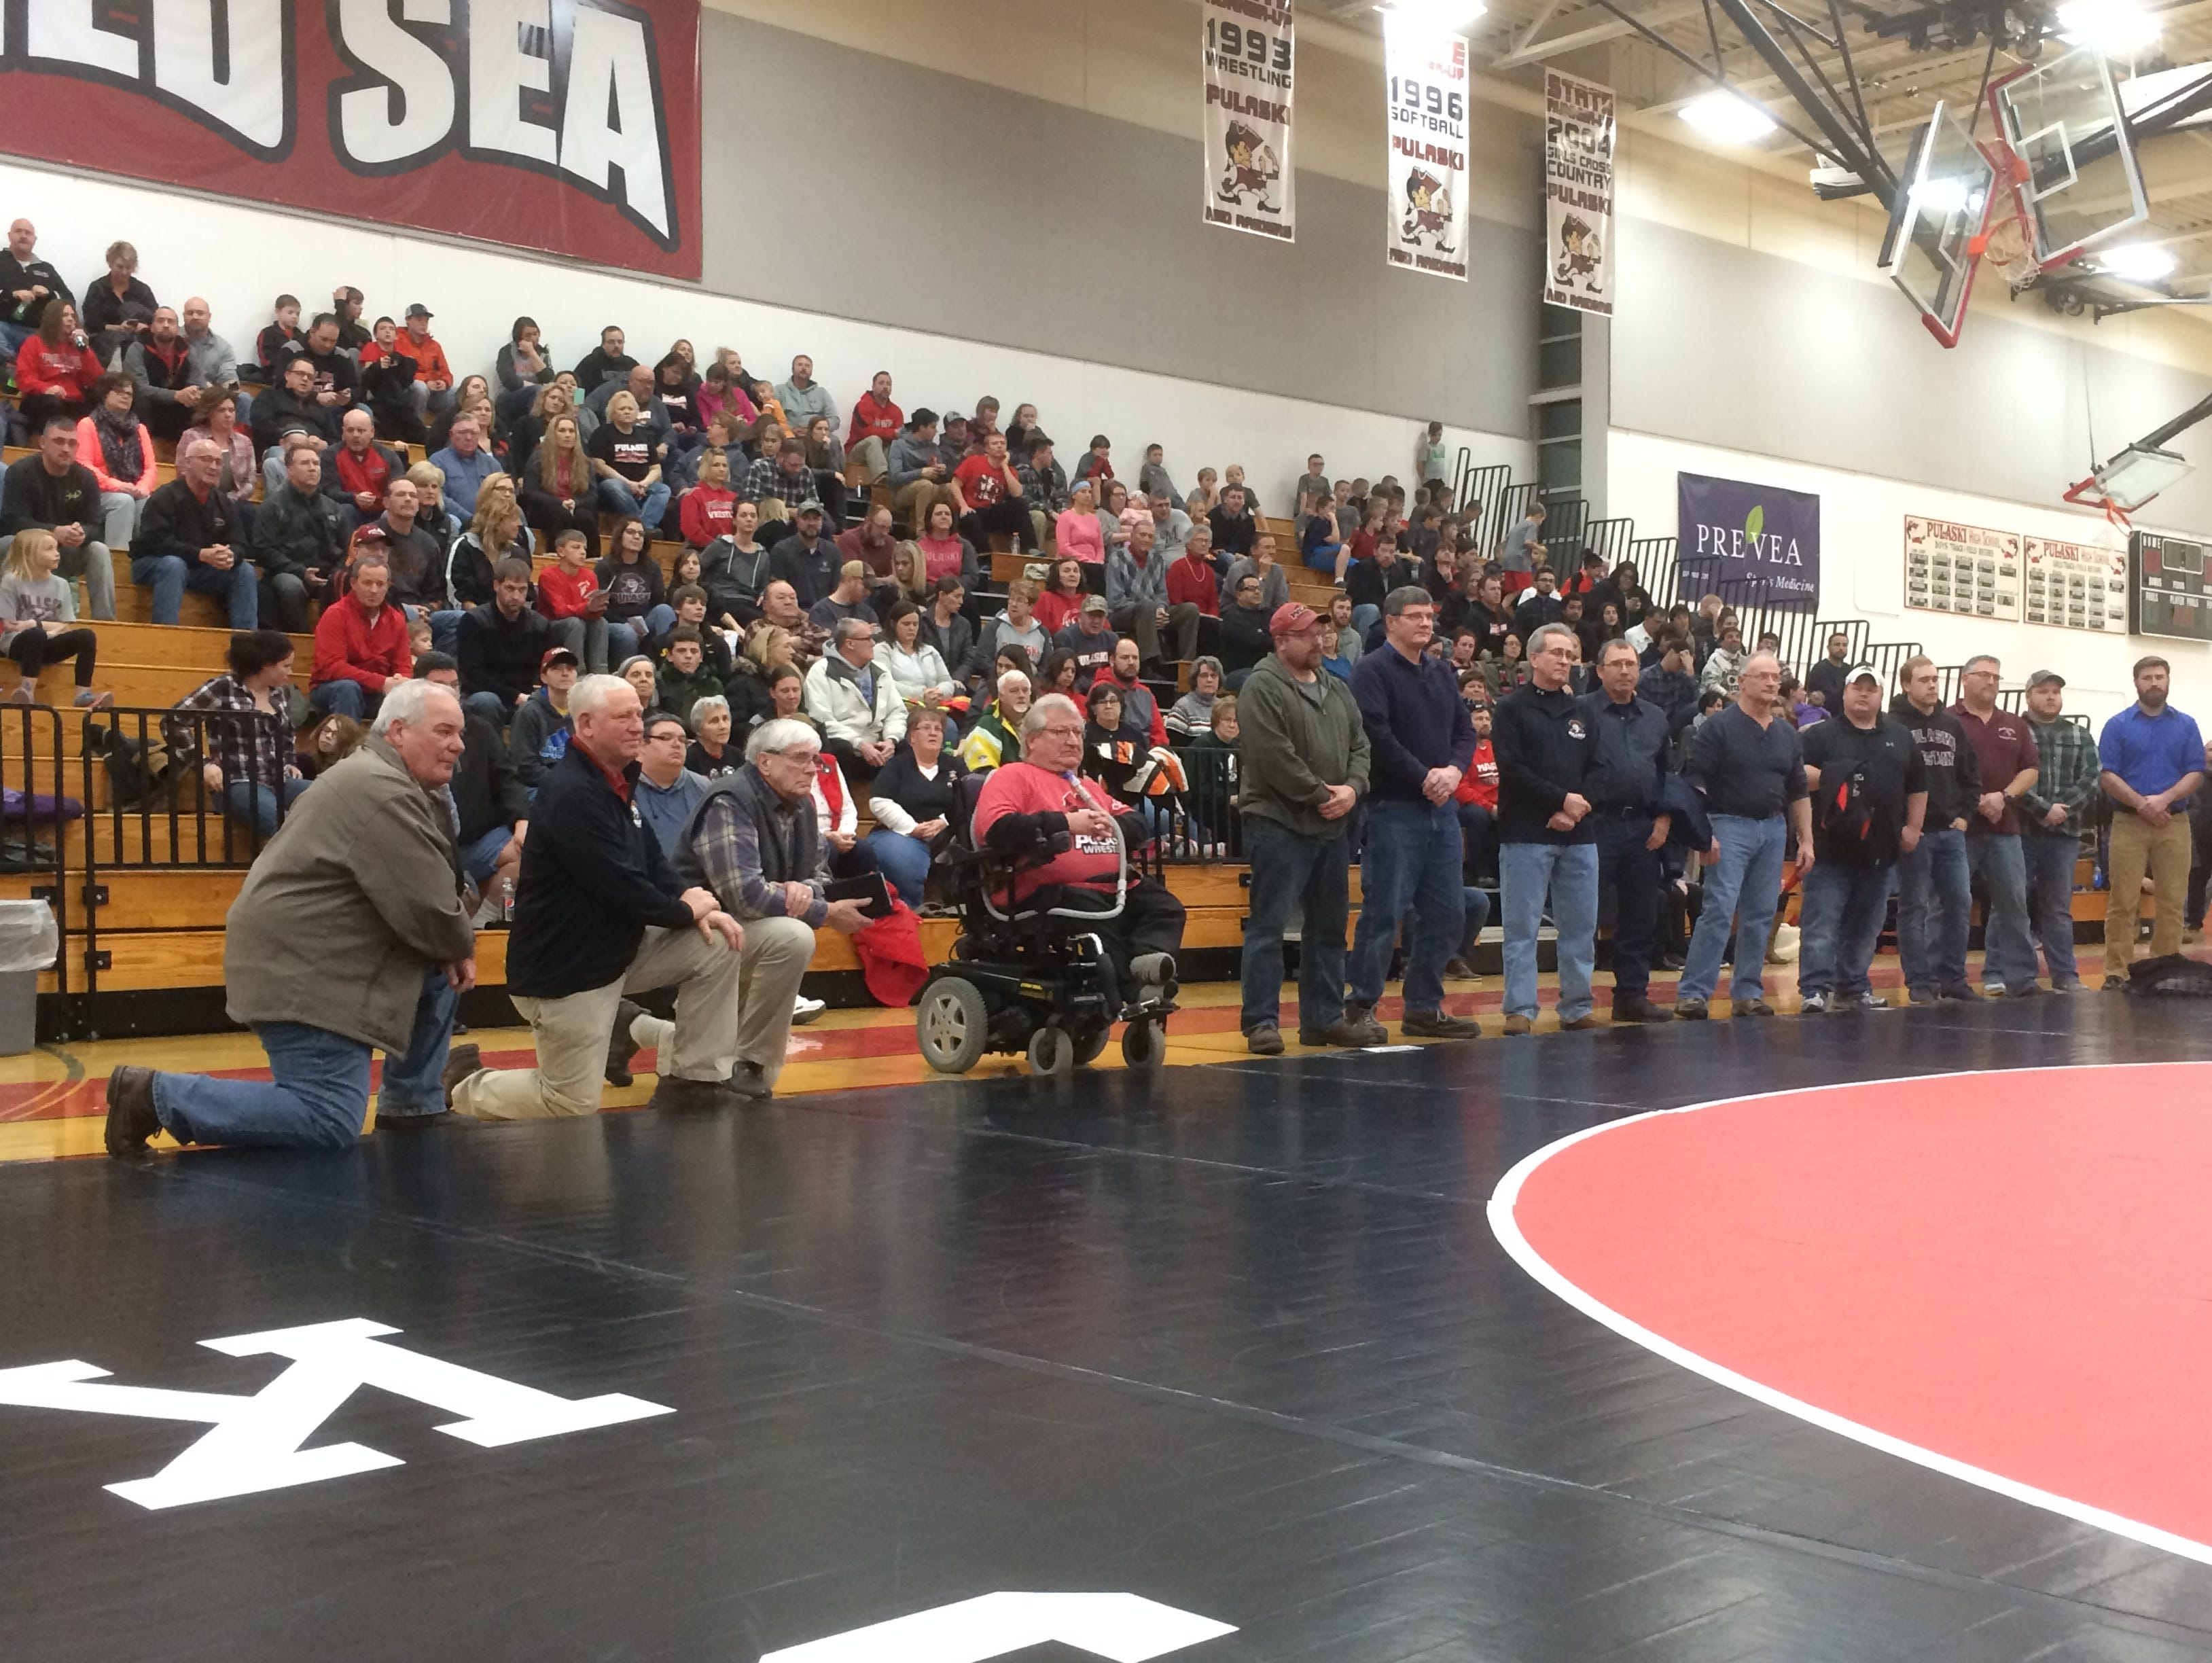 Gerald Lasecki, center, was informed he will be the recipient for the National Wrestling Hall of Fame's Medal of Courage last Thursday during Pulaski's alumni night.